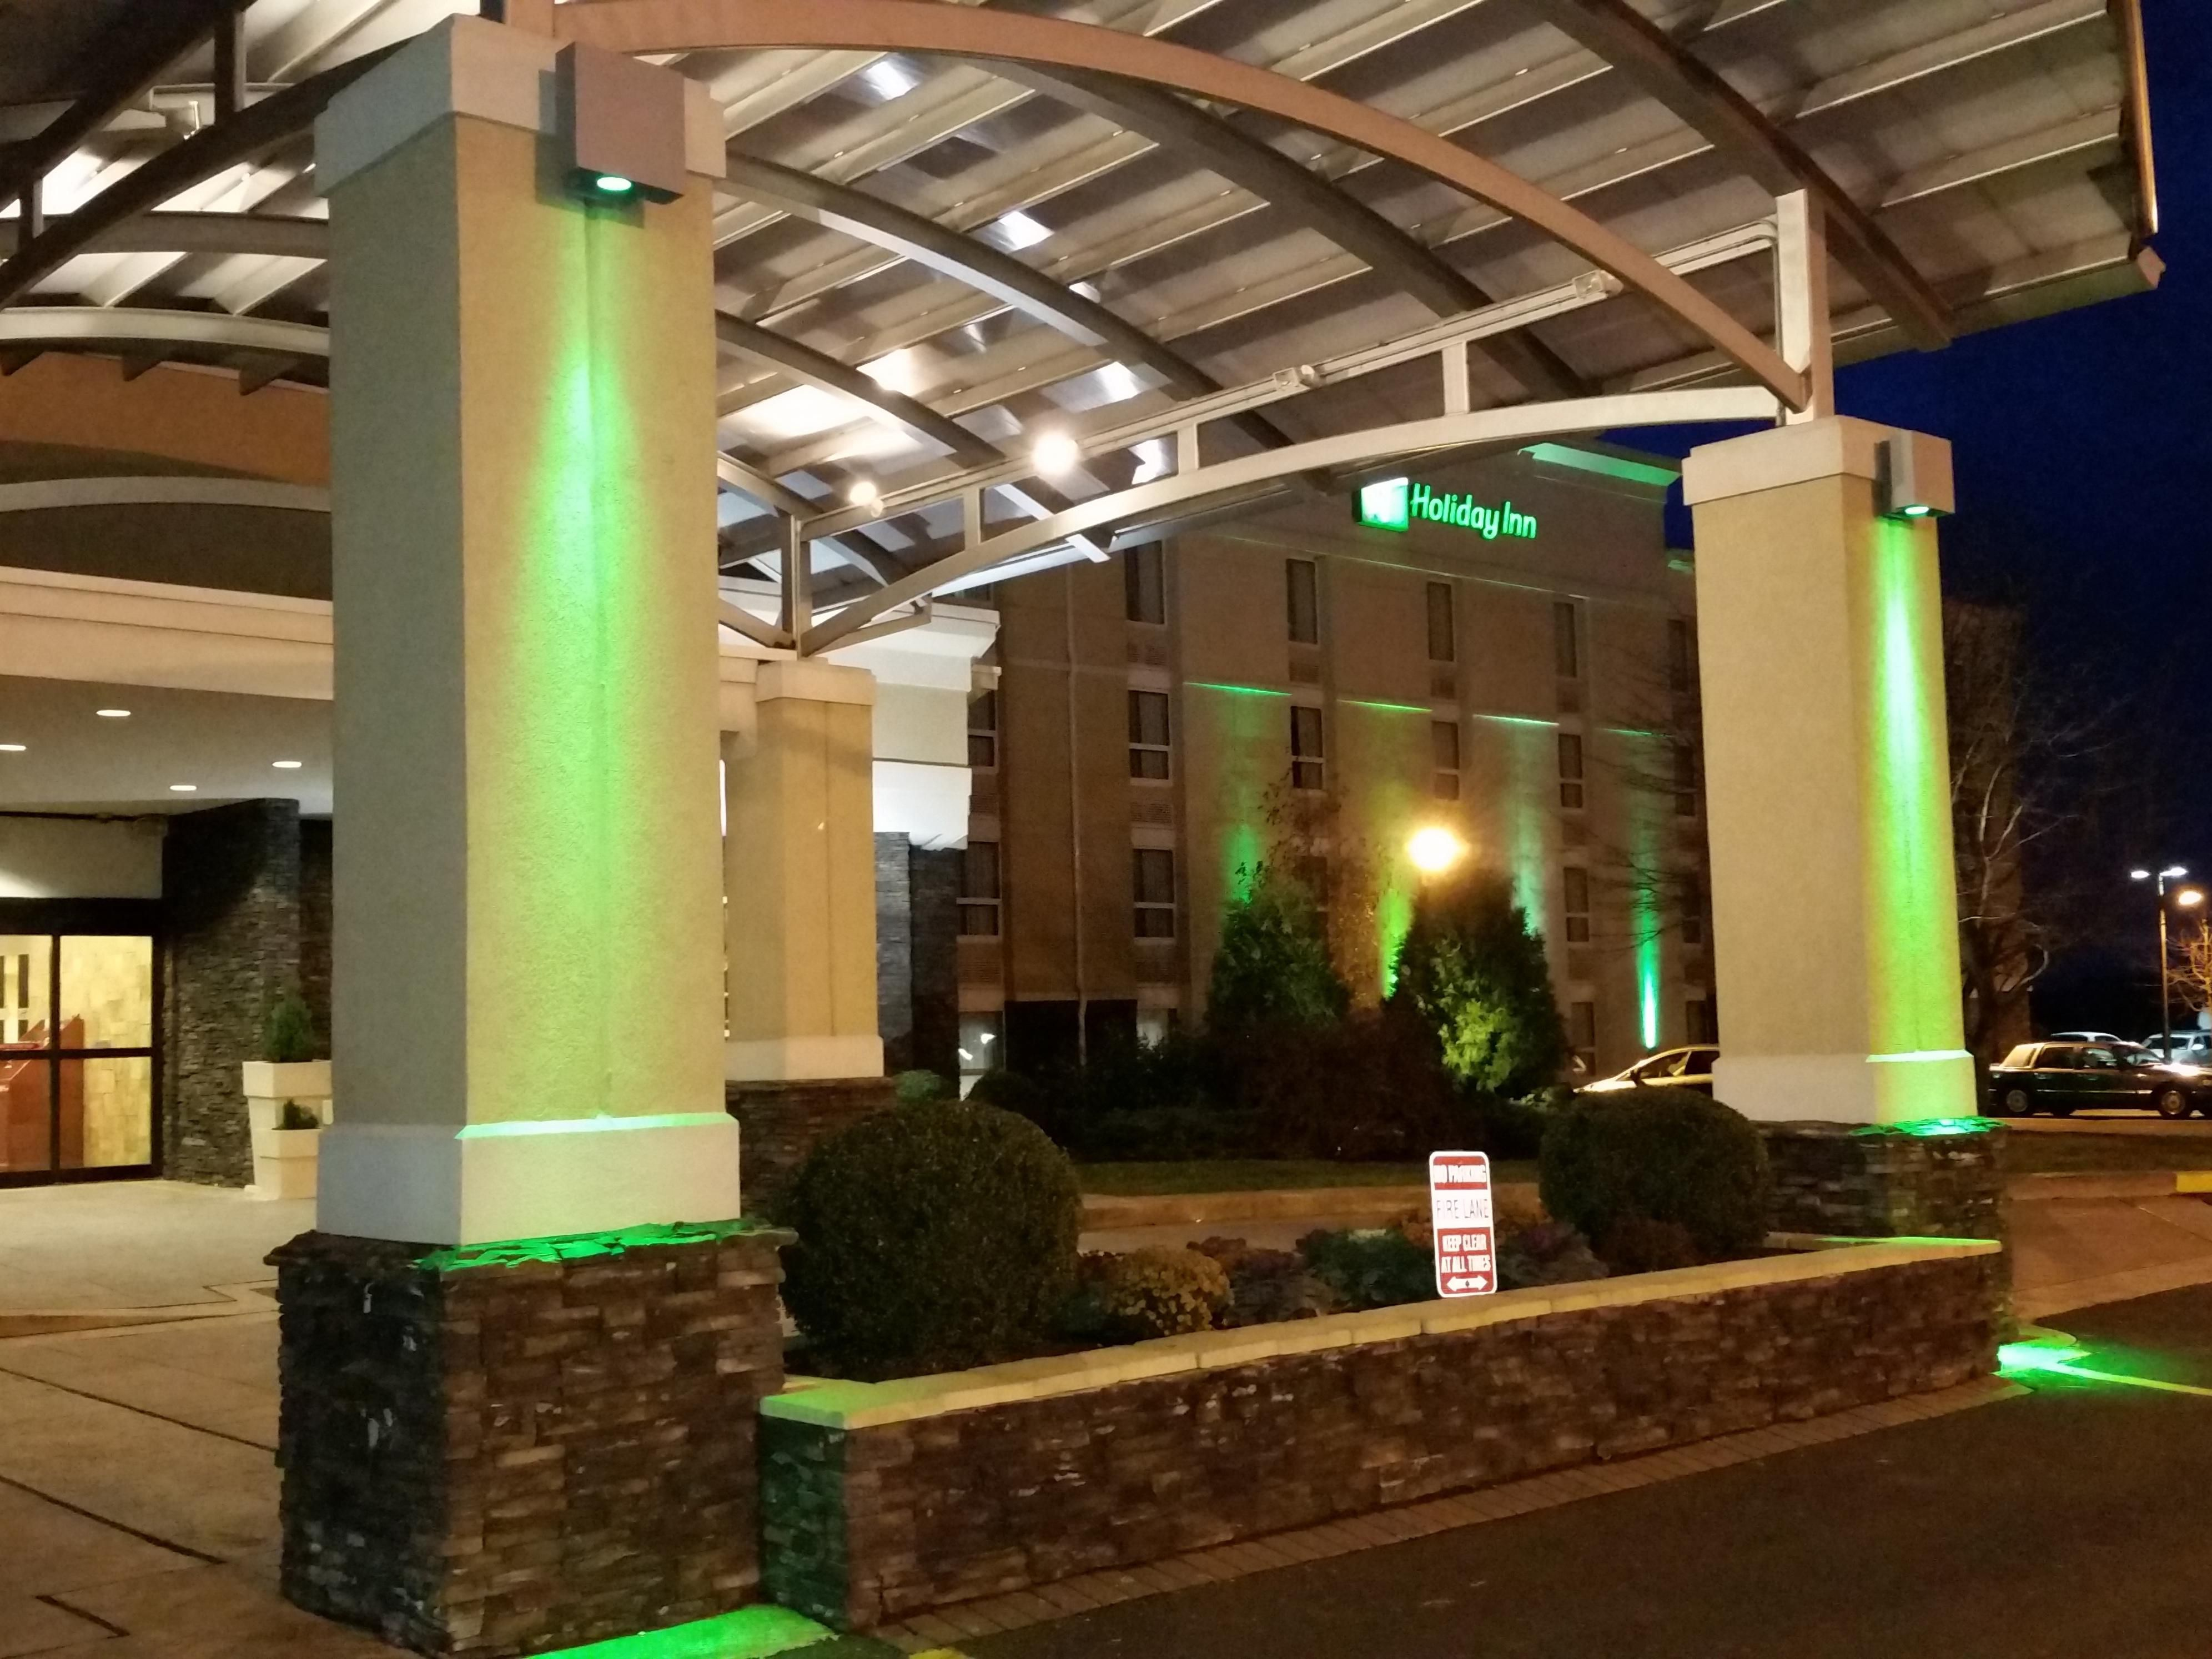 Our recently renovated Holiday Inn has 182 guest rooms